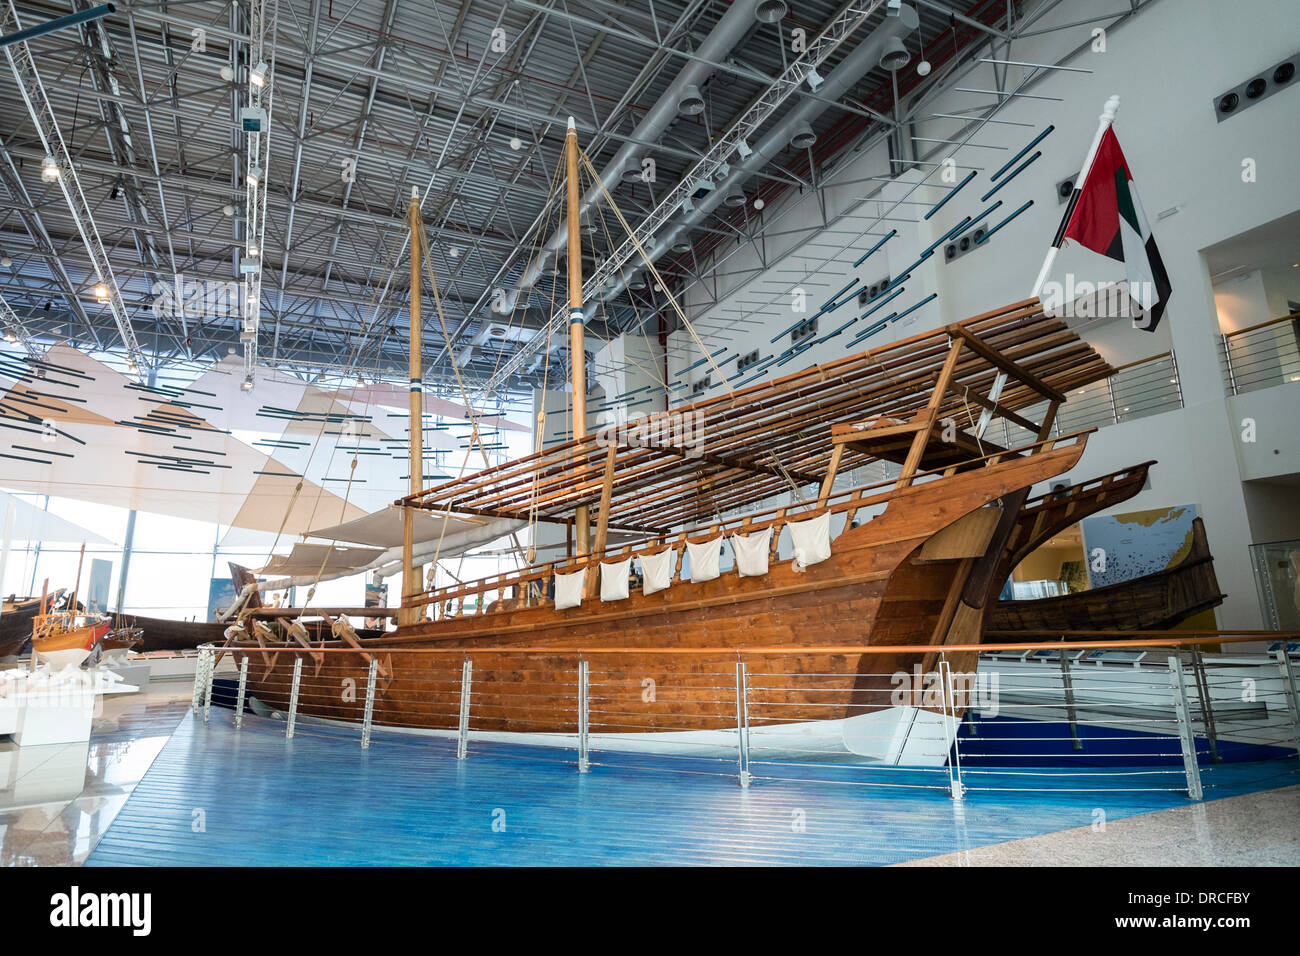 New maritime museum in Sharjah in United Arab Emirates - Stock Image